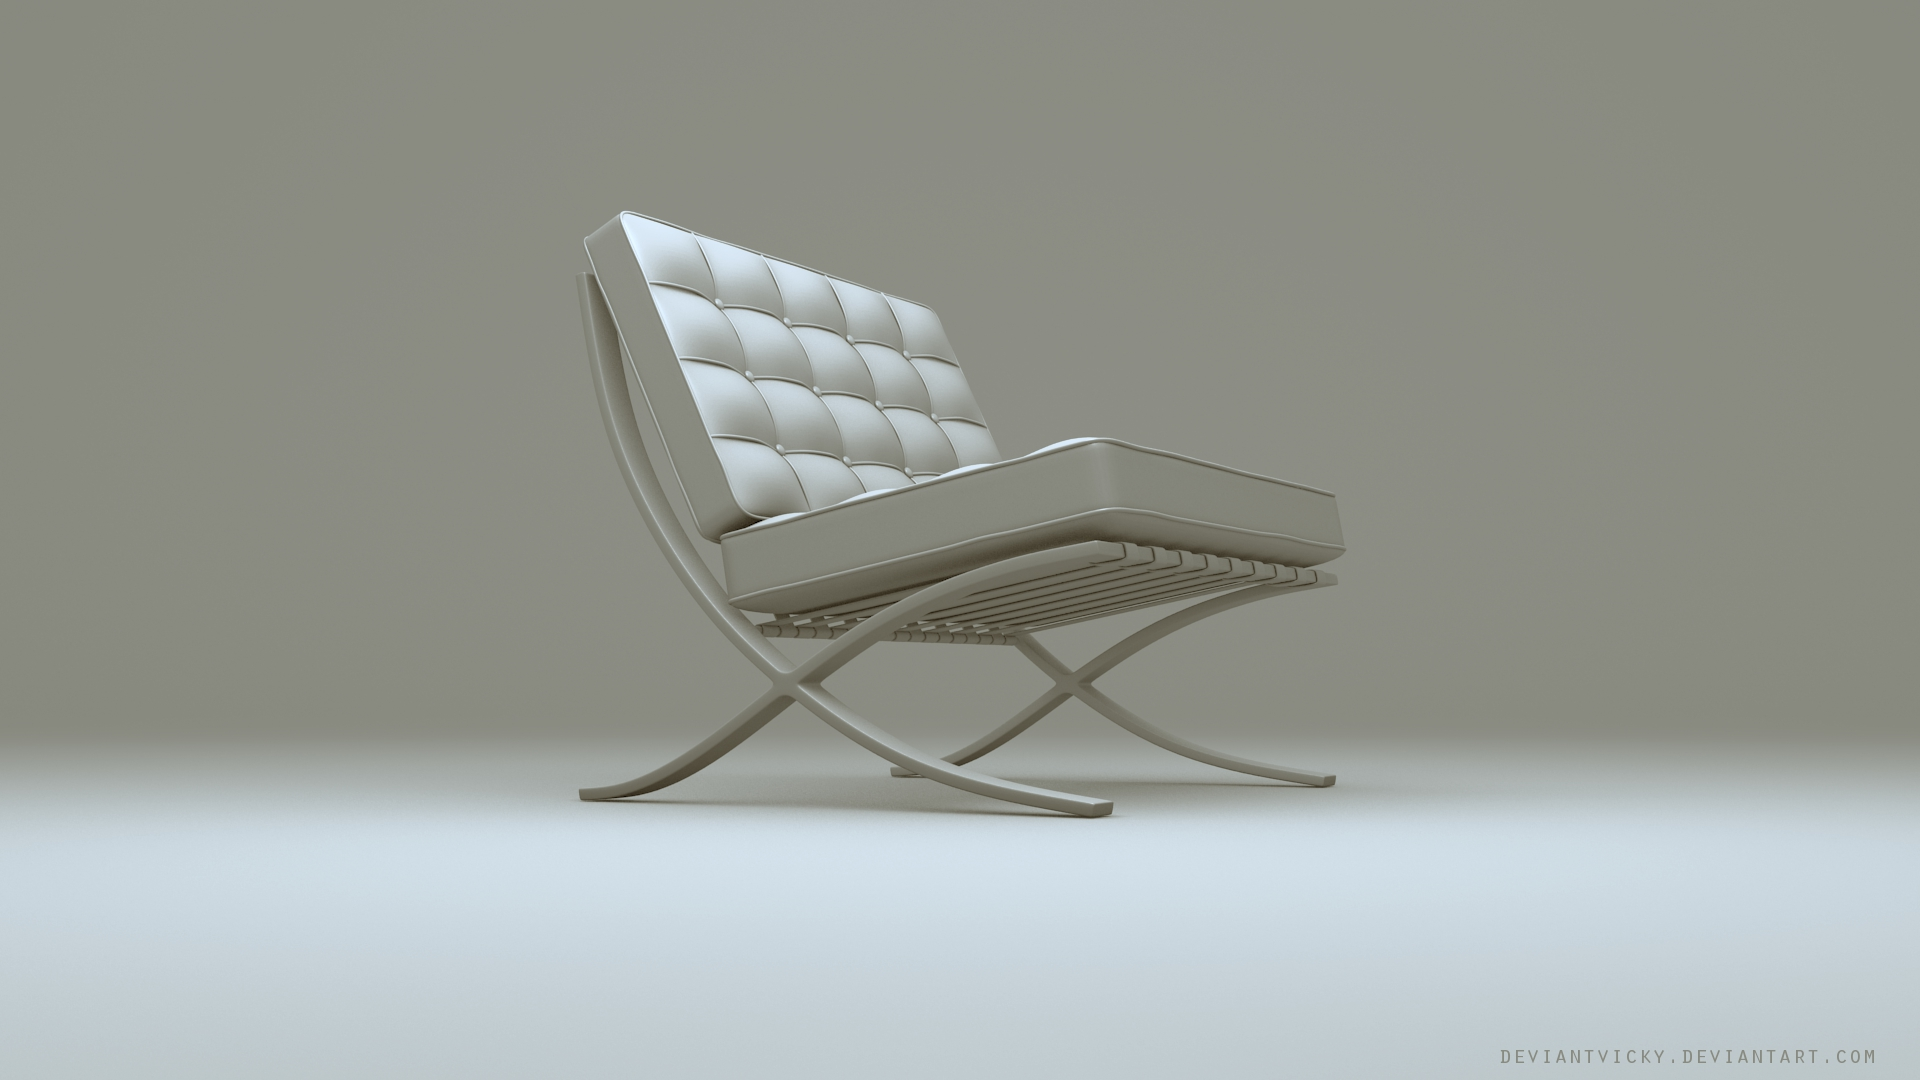 Barcelona Chair by VickyM72